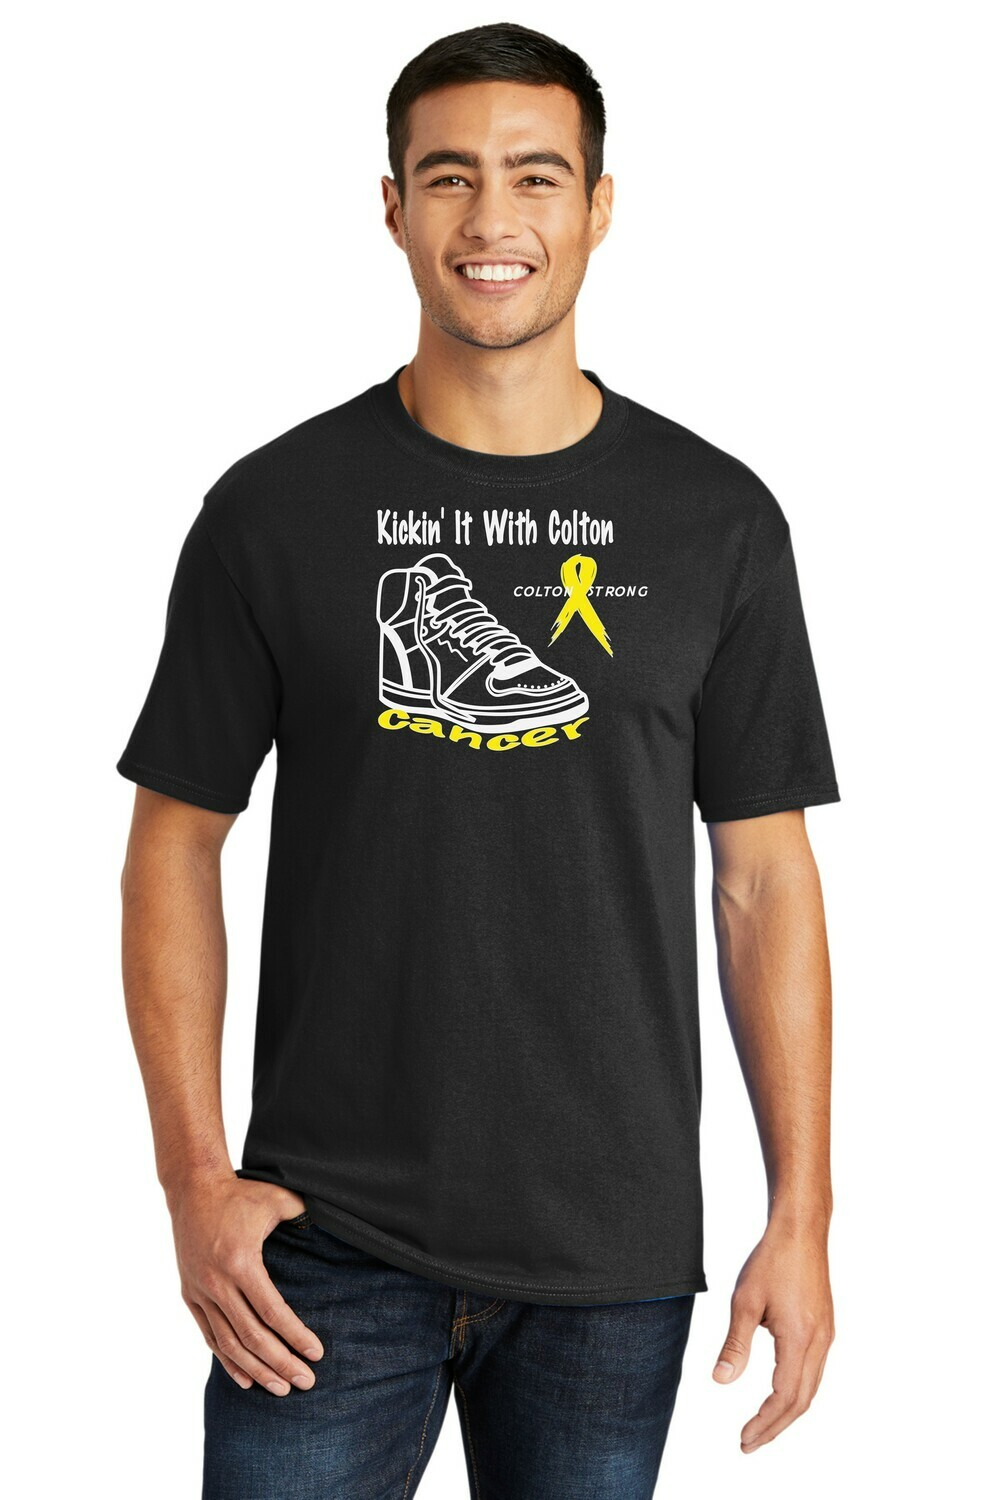 Kickin' It With Colton T-Shirt